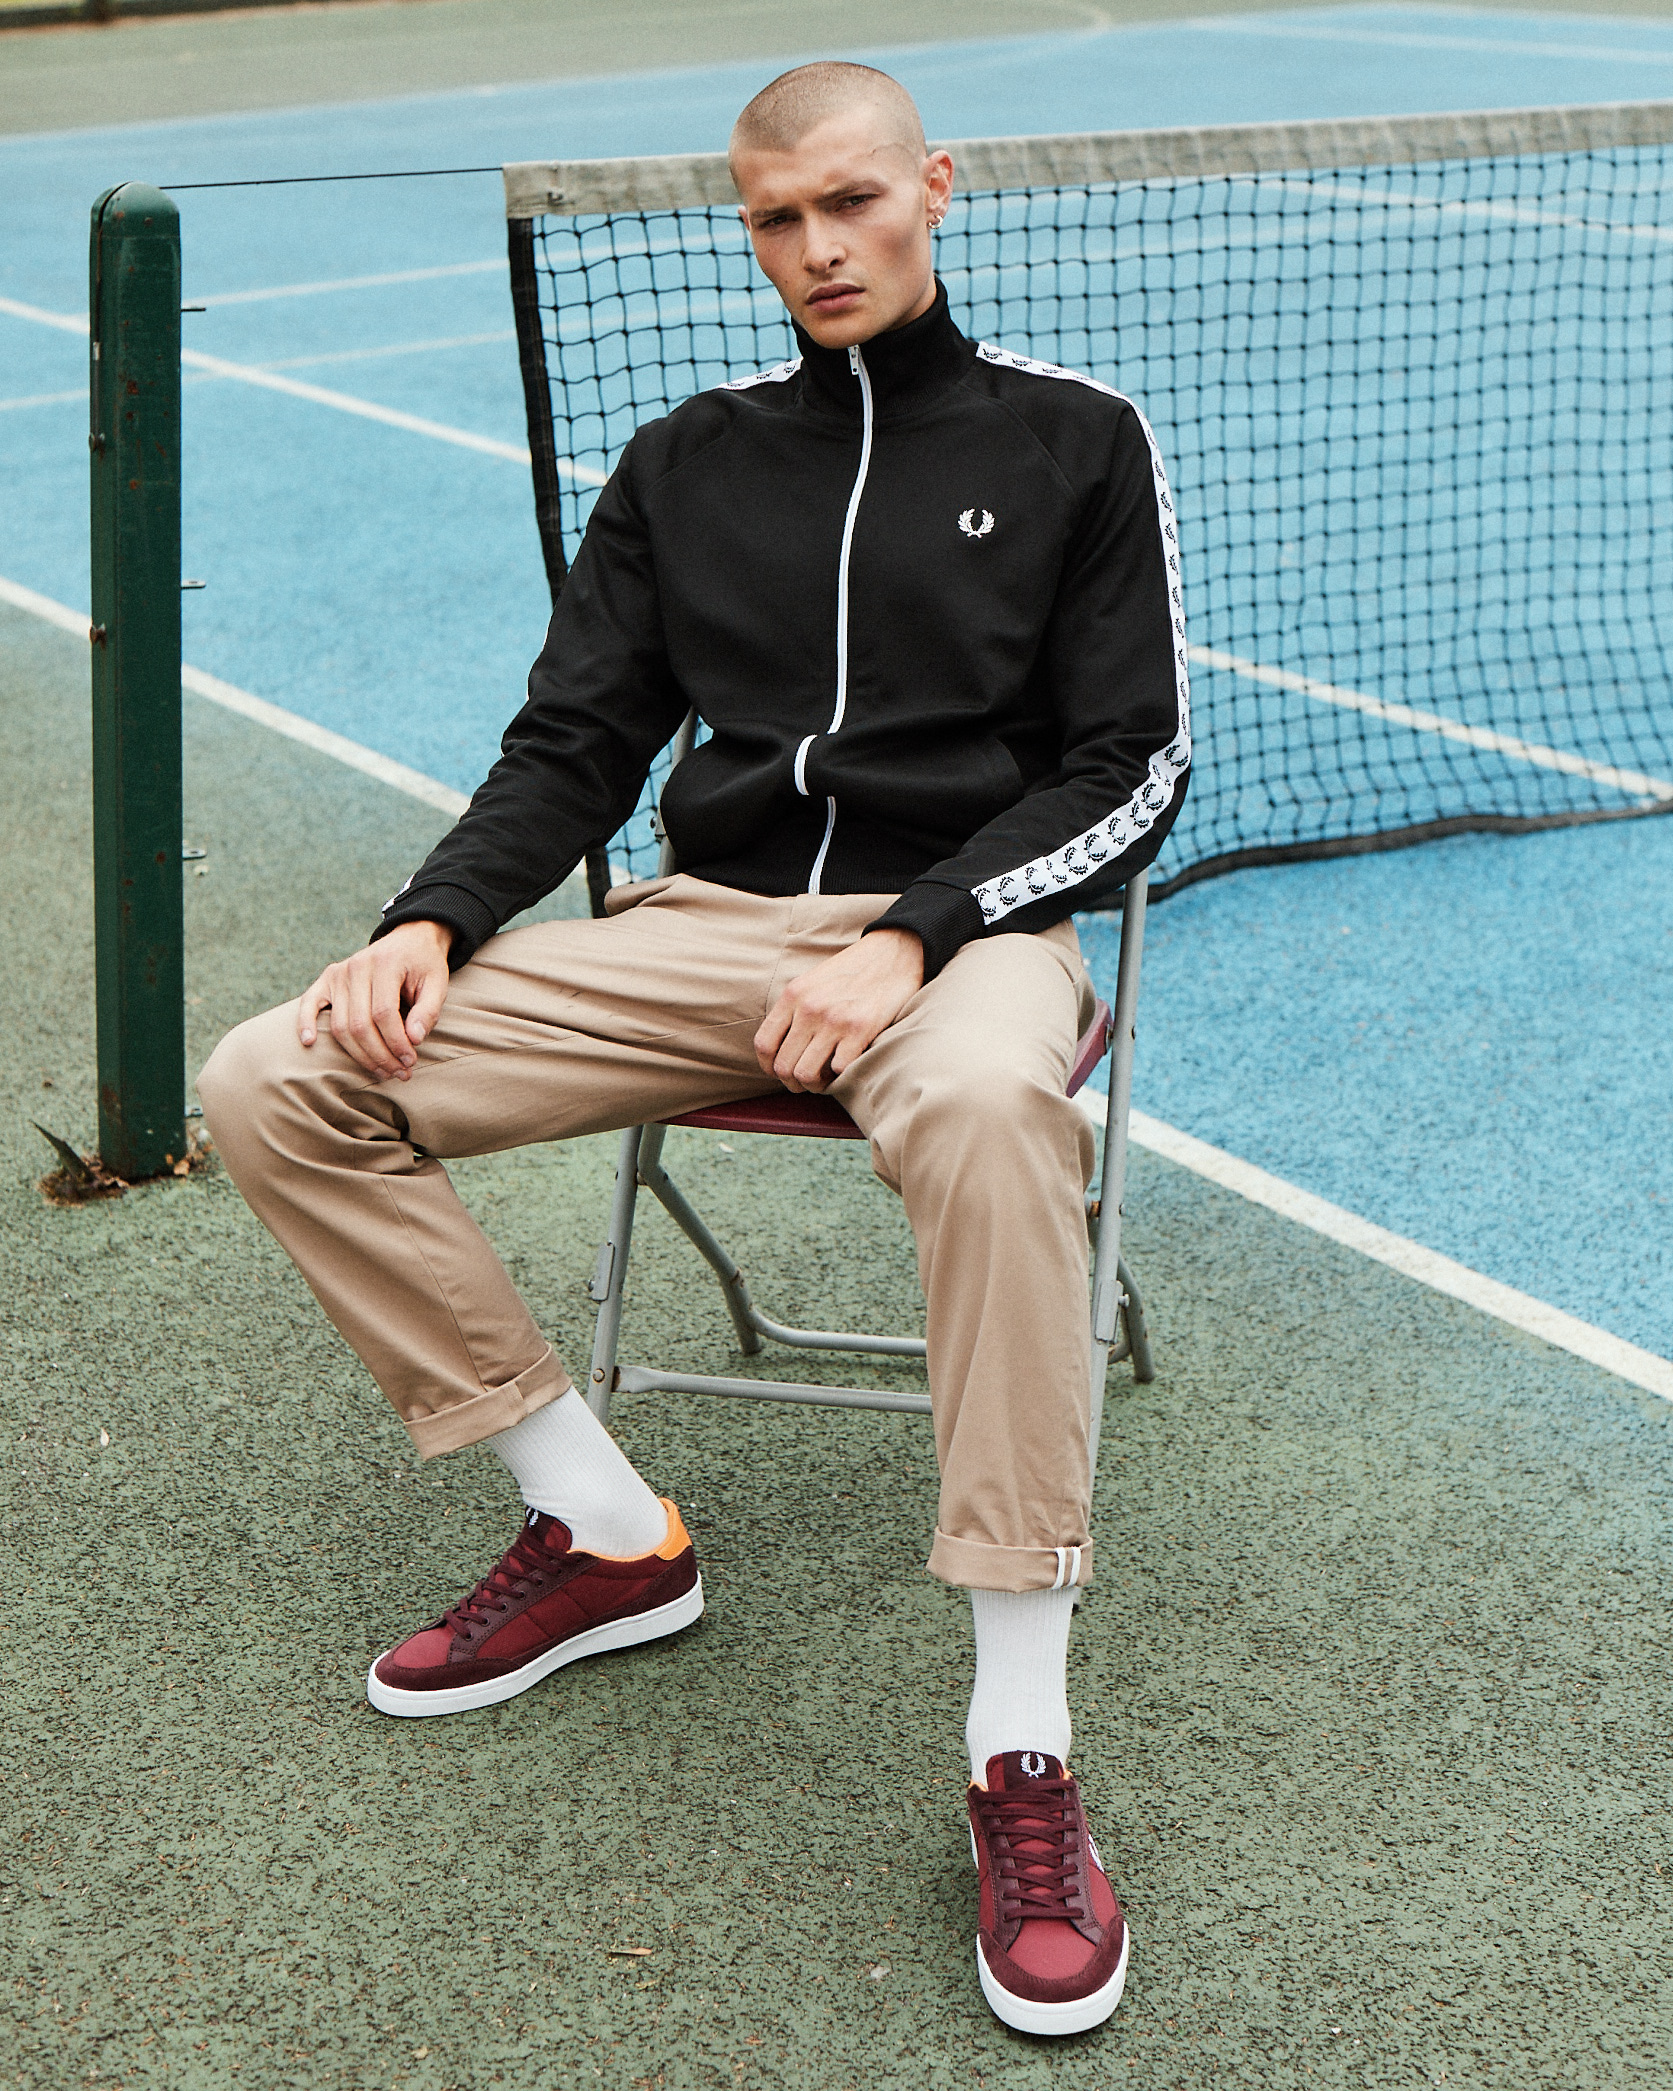 FRED PERRY-TENNIS SHOE1214.jpg